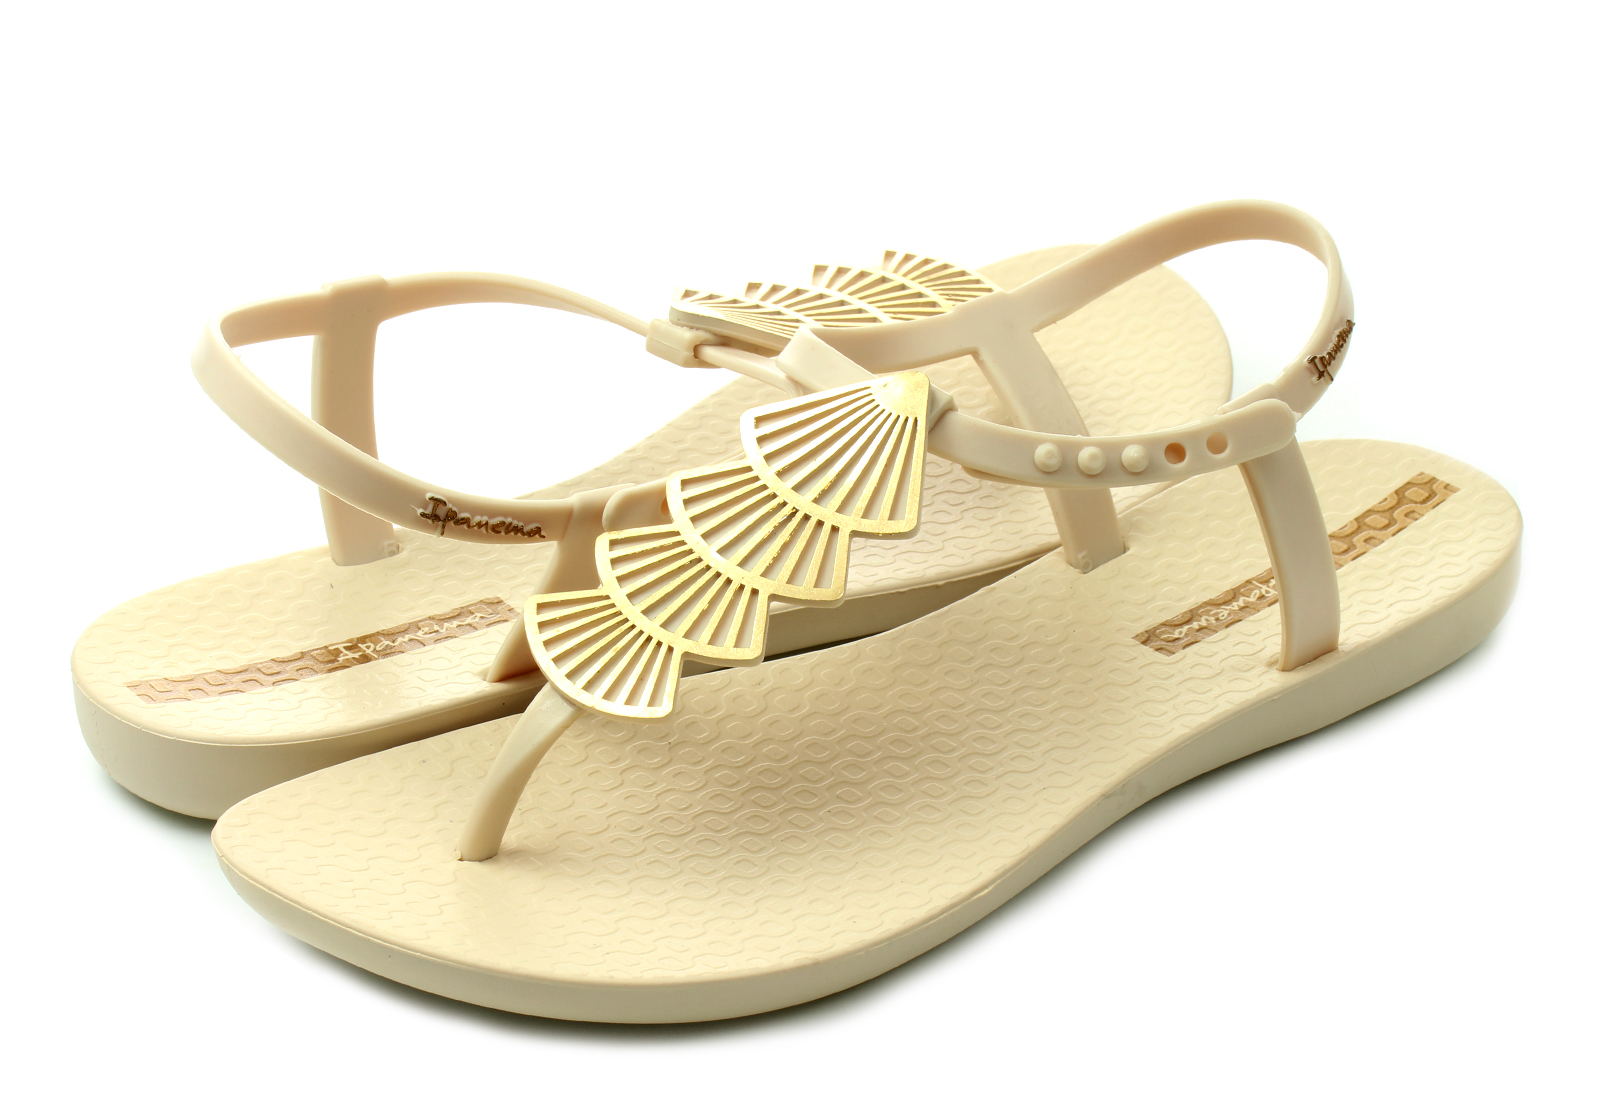 a6fdf1a2a29f Ipanema Sandals - Class Glam Ii - 26207-20354 - Online shop for ...